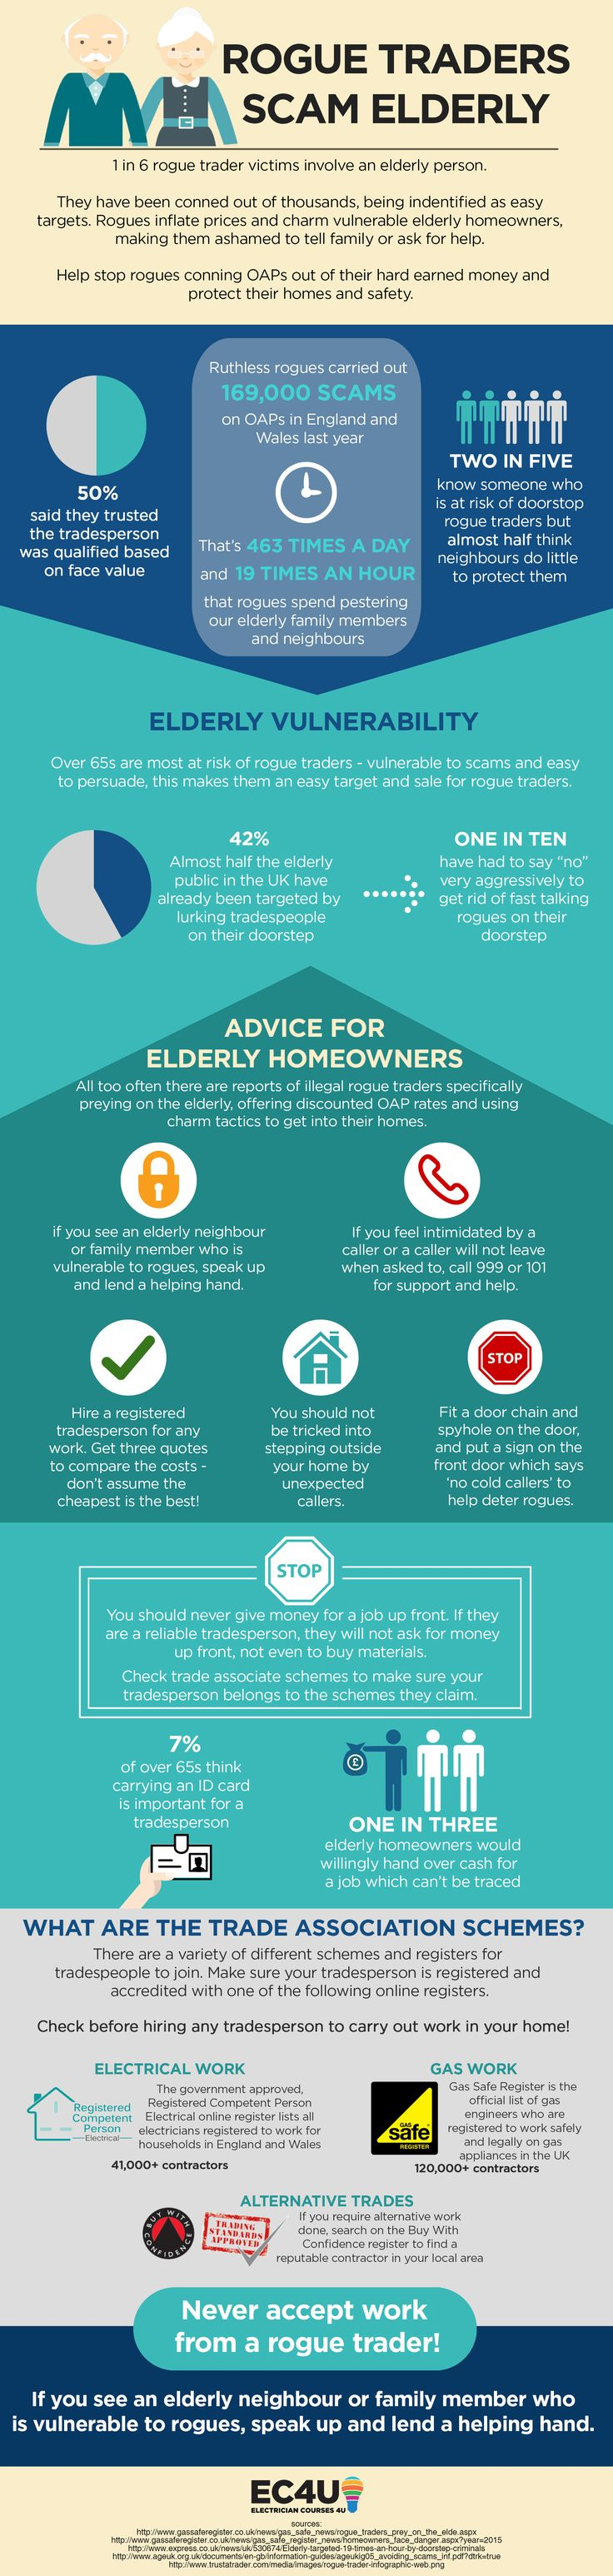 Rogue traders scam the elderly: Find out in this infographic why they are high risk targets!